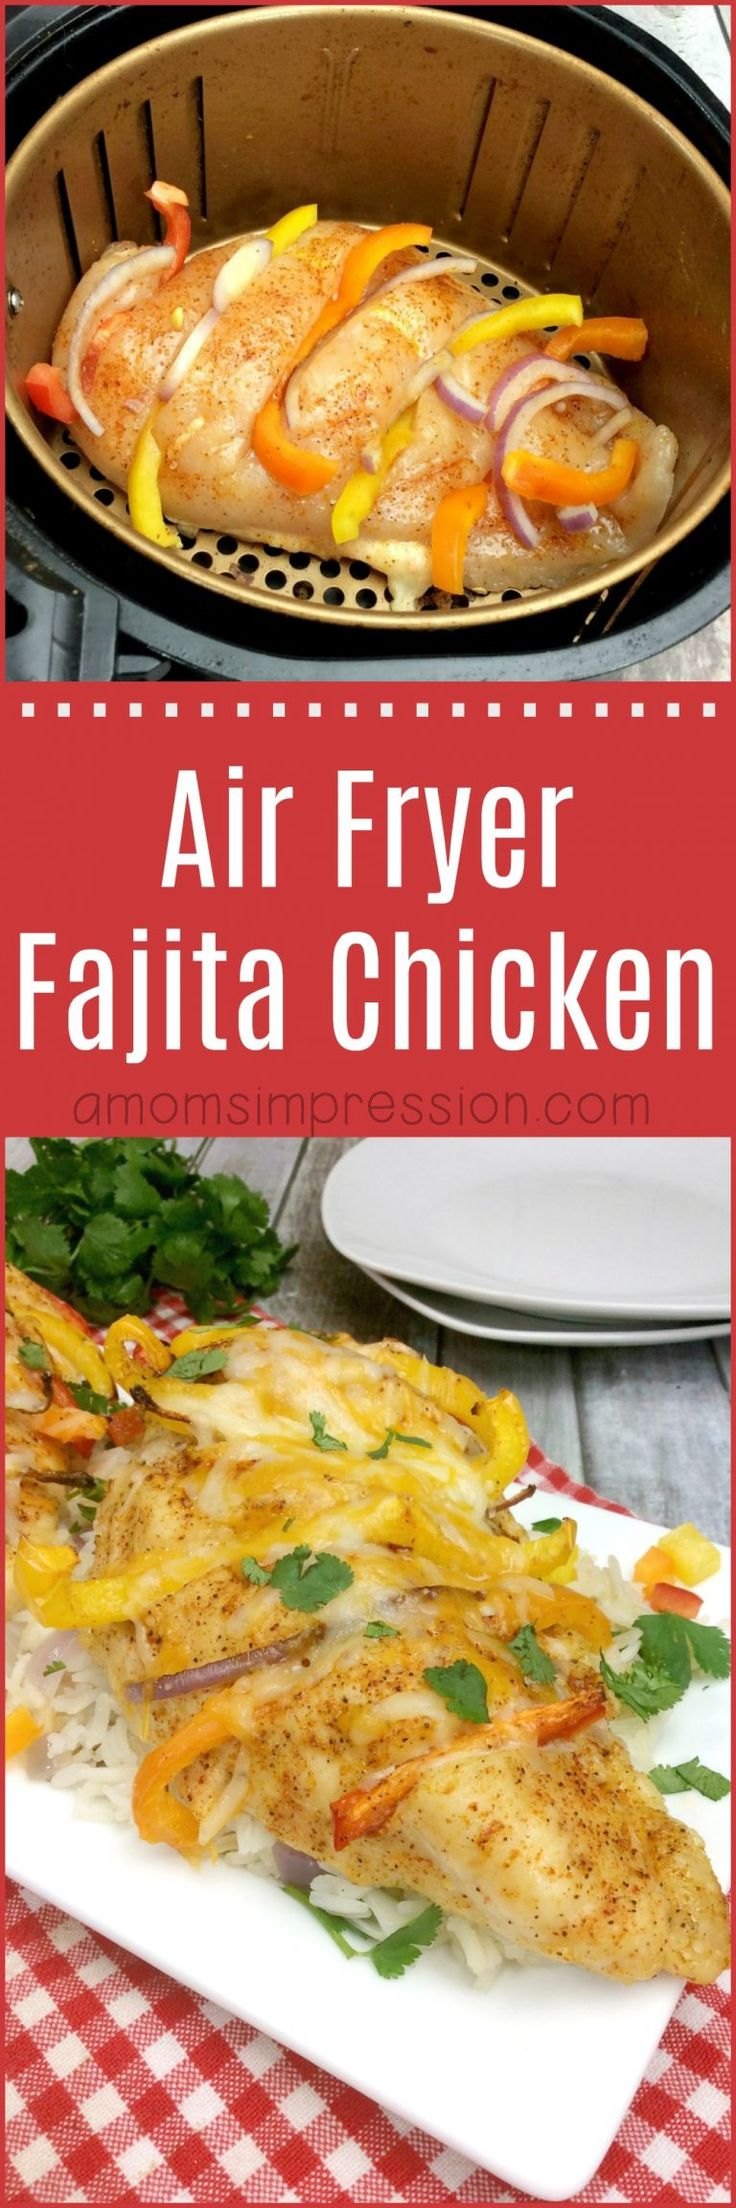 132 best Air Fryer chart & recipes images on Pinterest | Air frying, Dry fryer and Healthy ...